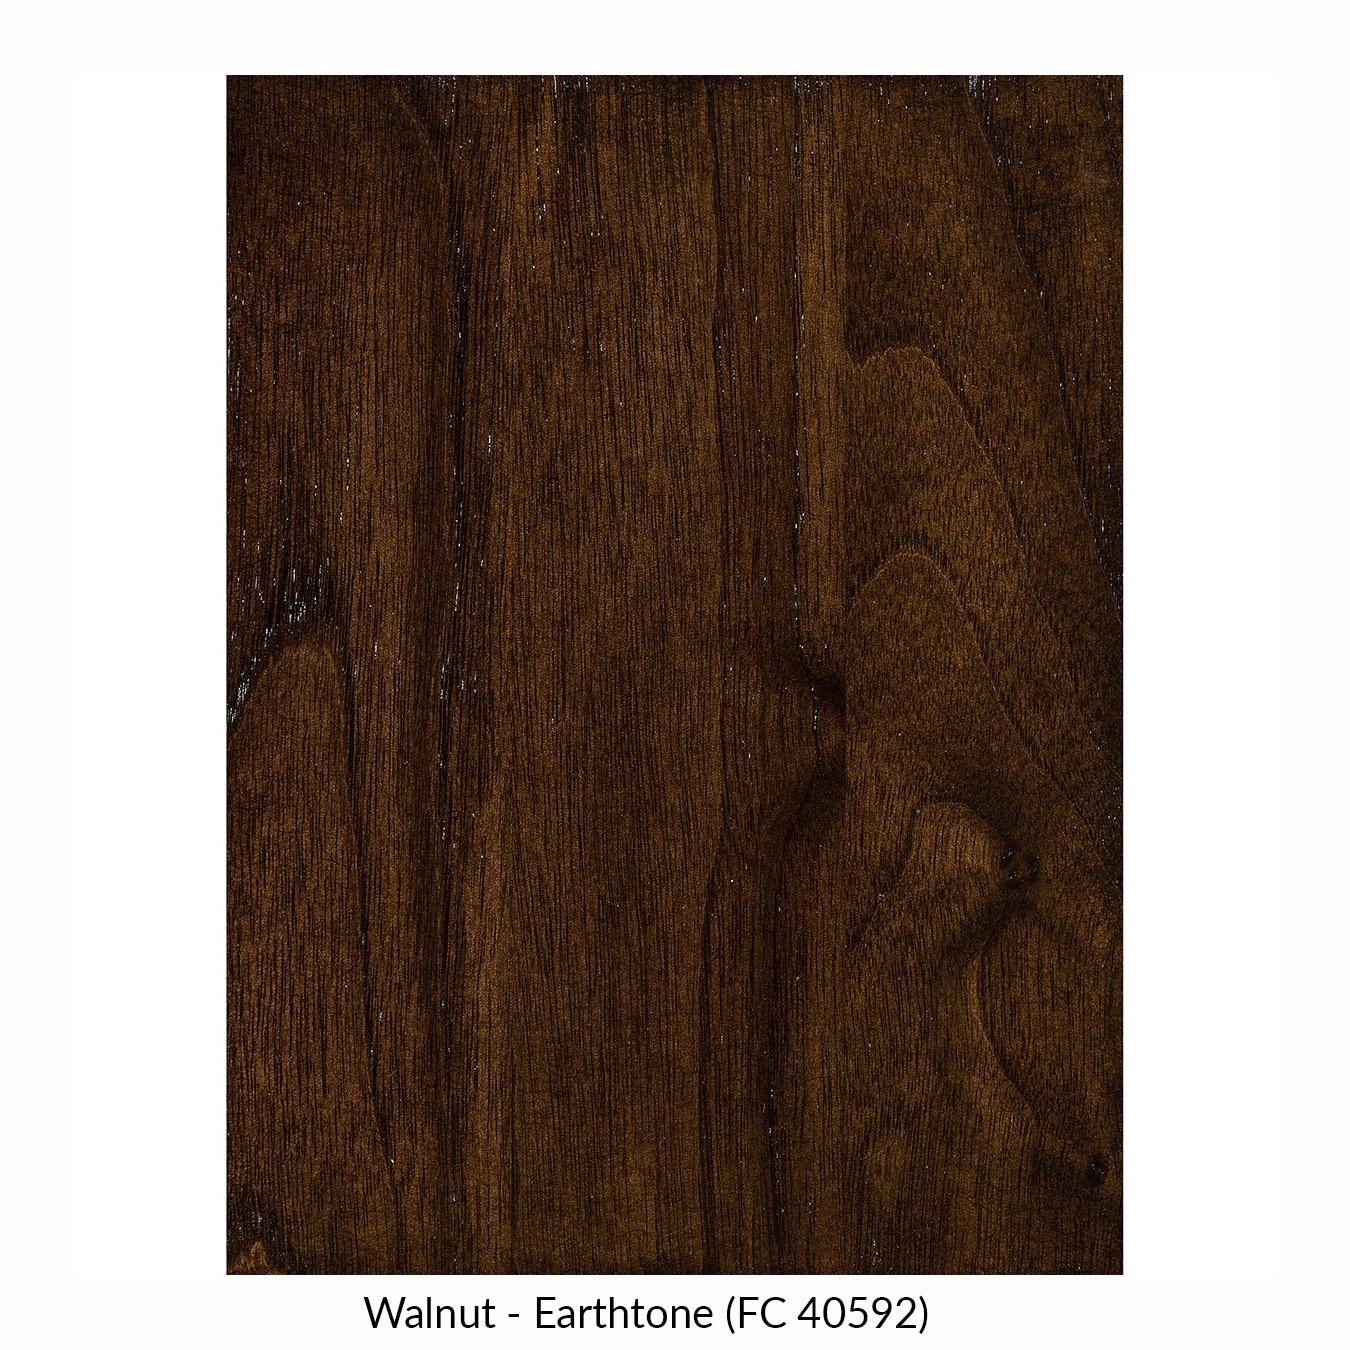 spectrum-walnut-earthtone-fc-40592.jpg